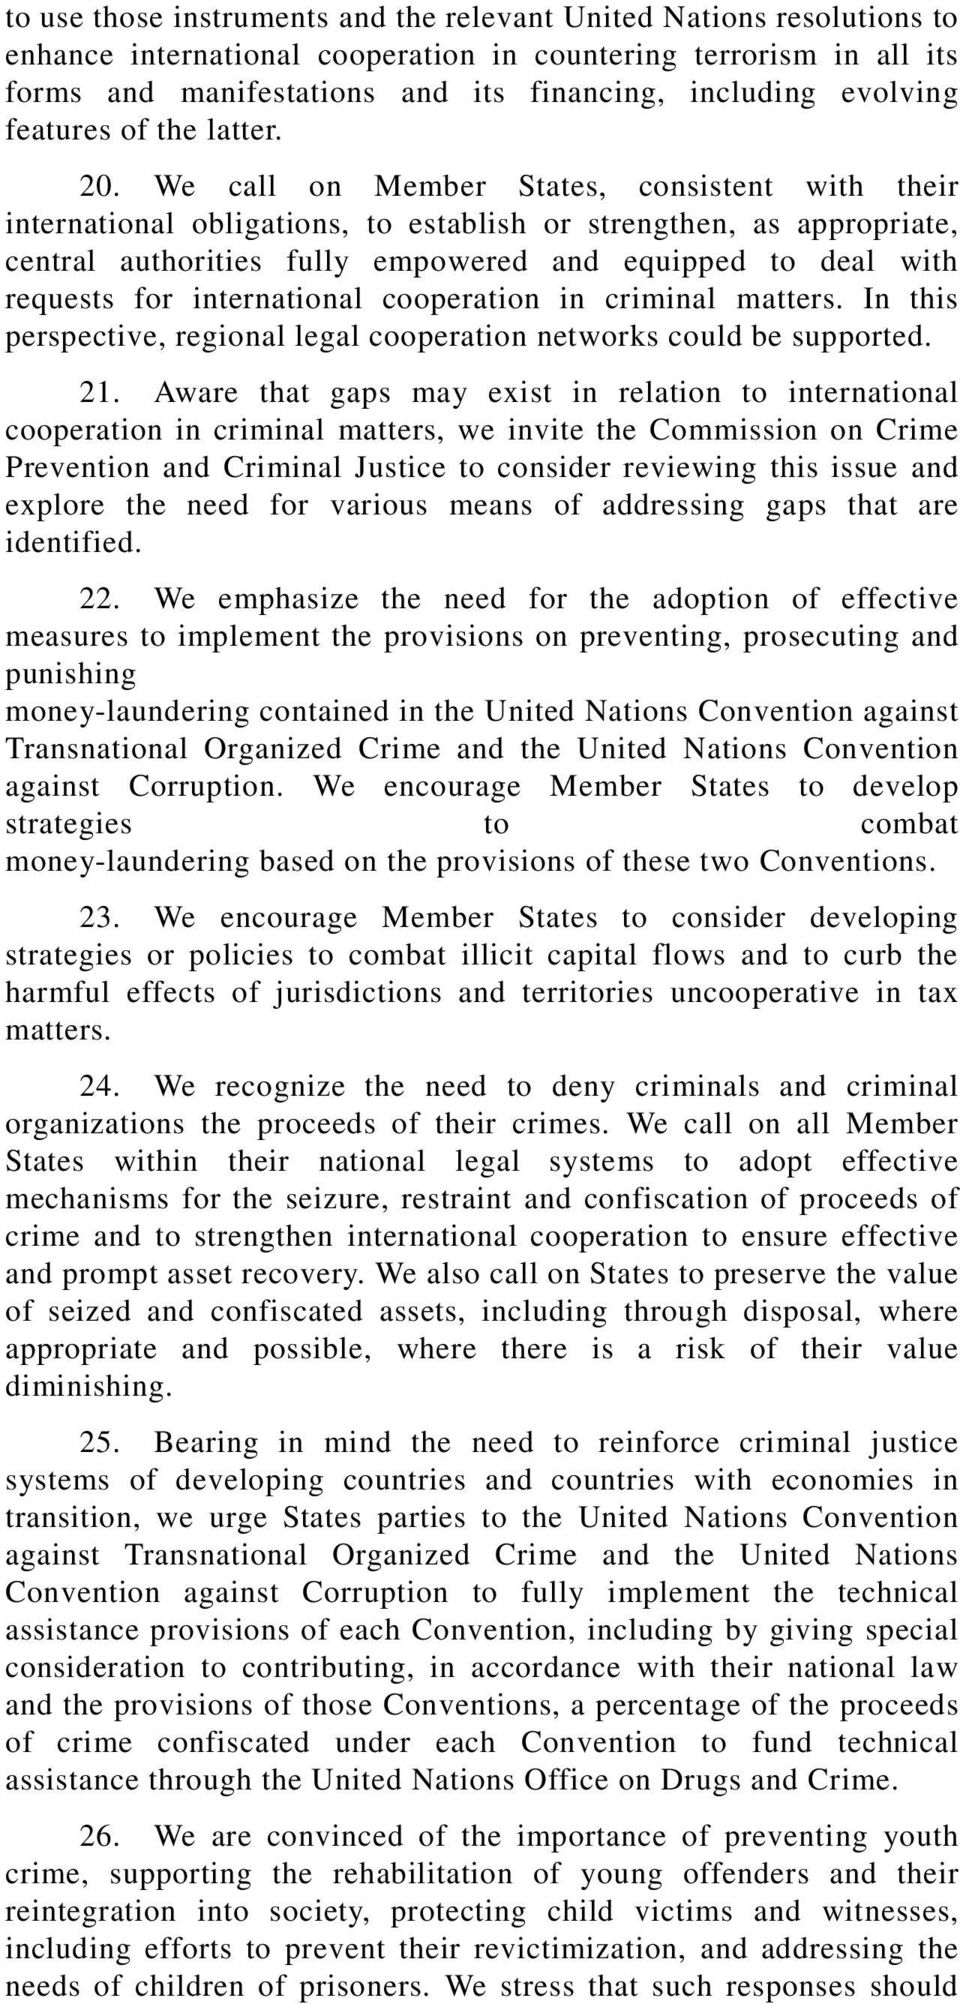 We call on Member States, consistent with their international obligations, to establish or strengthen, as appropriate, central authorities fully empowered and equipped to deal with requests for